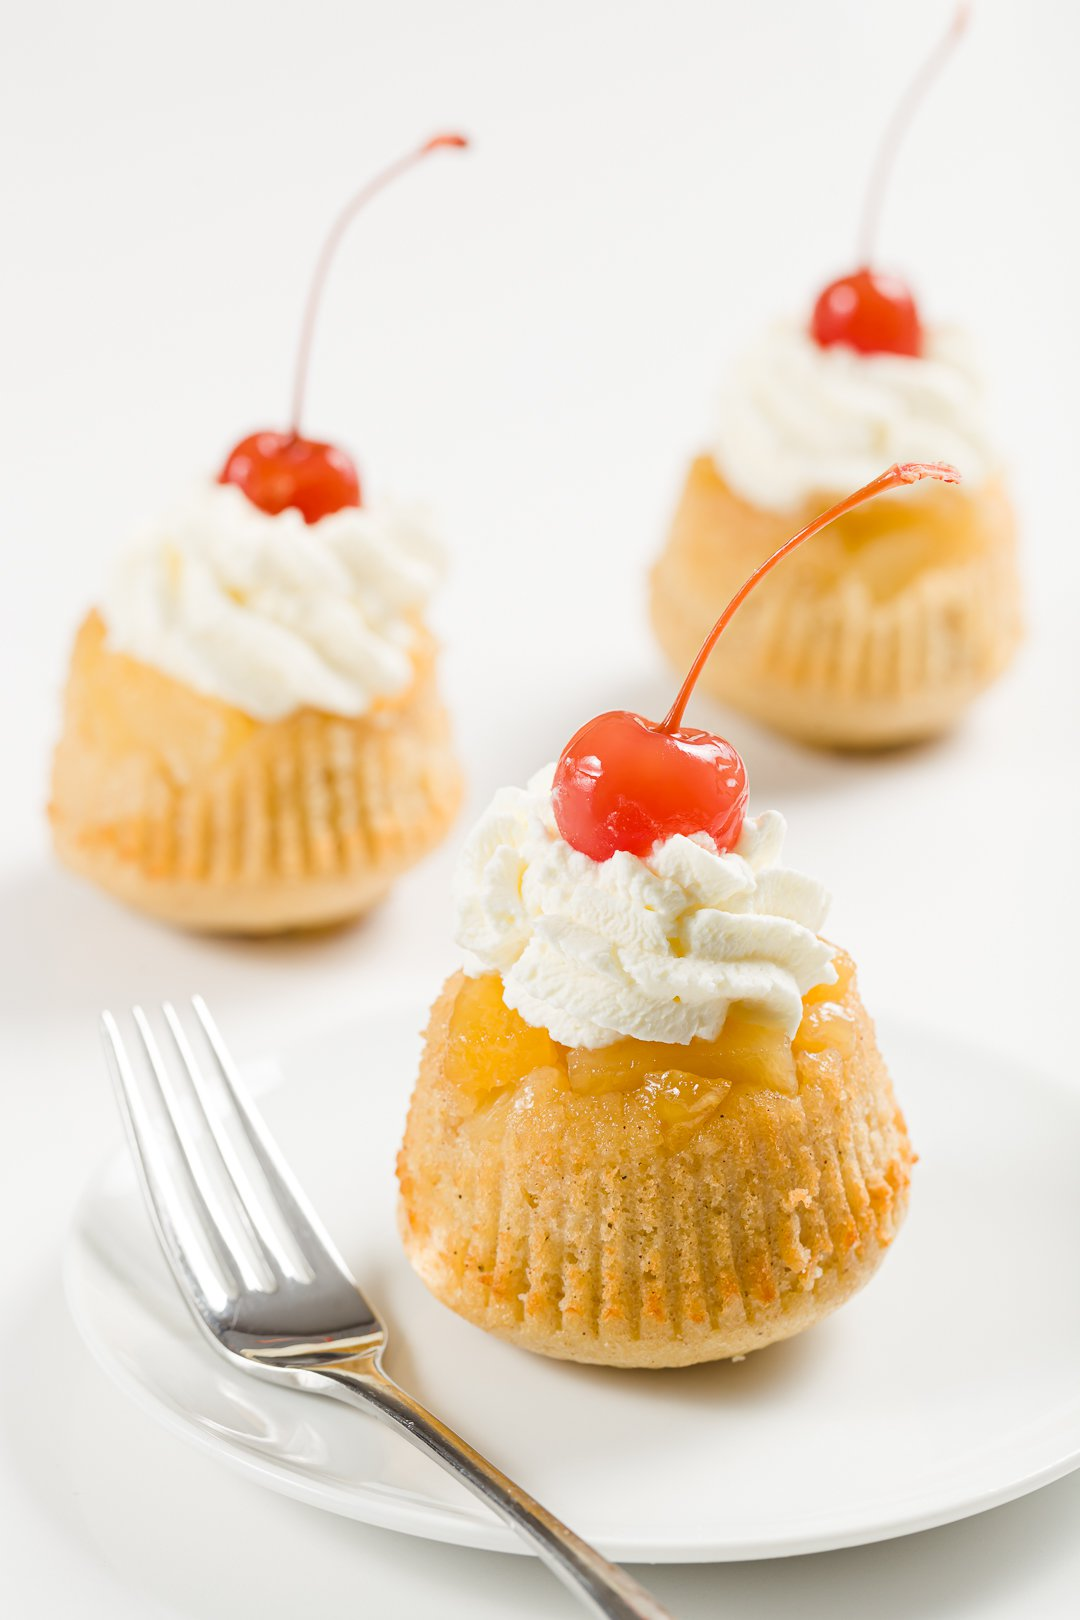 pineapple upside-down cupcakes topped with whipped cream and maraschino cherries